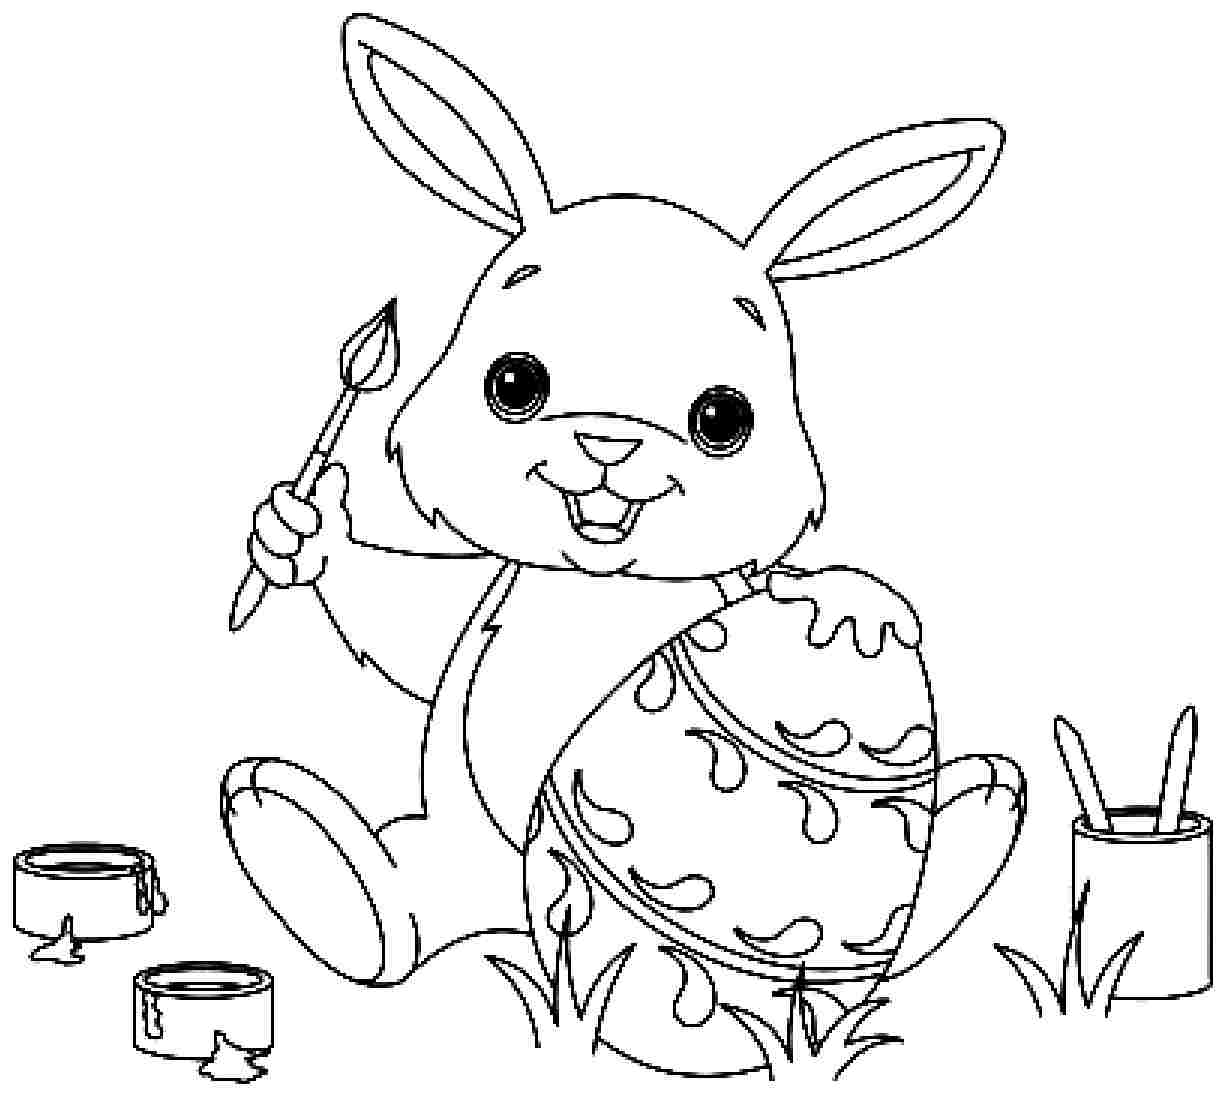 rabbit coloring page rabbit to download for free rabbit kids coloring pages page coloring rabbit